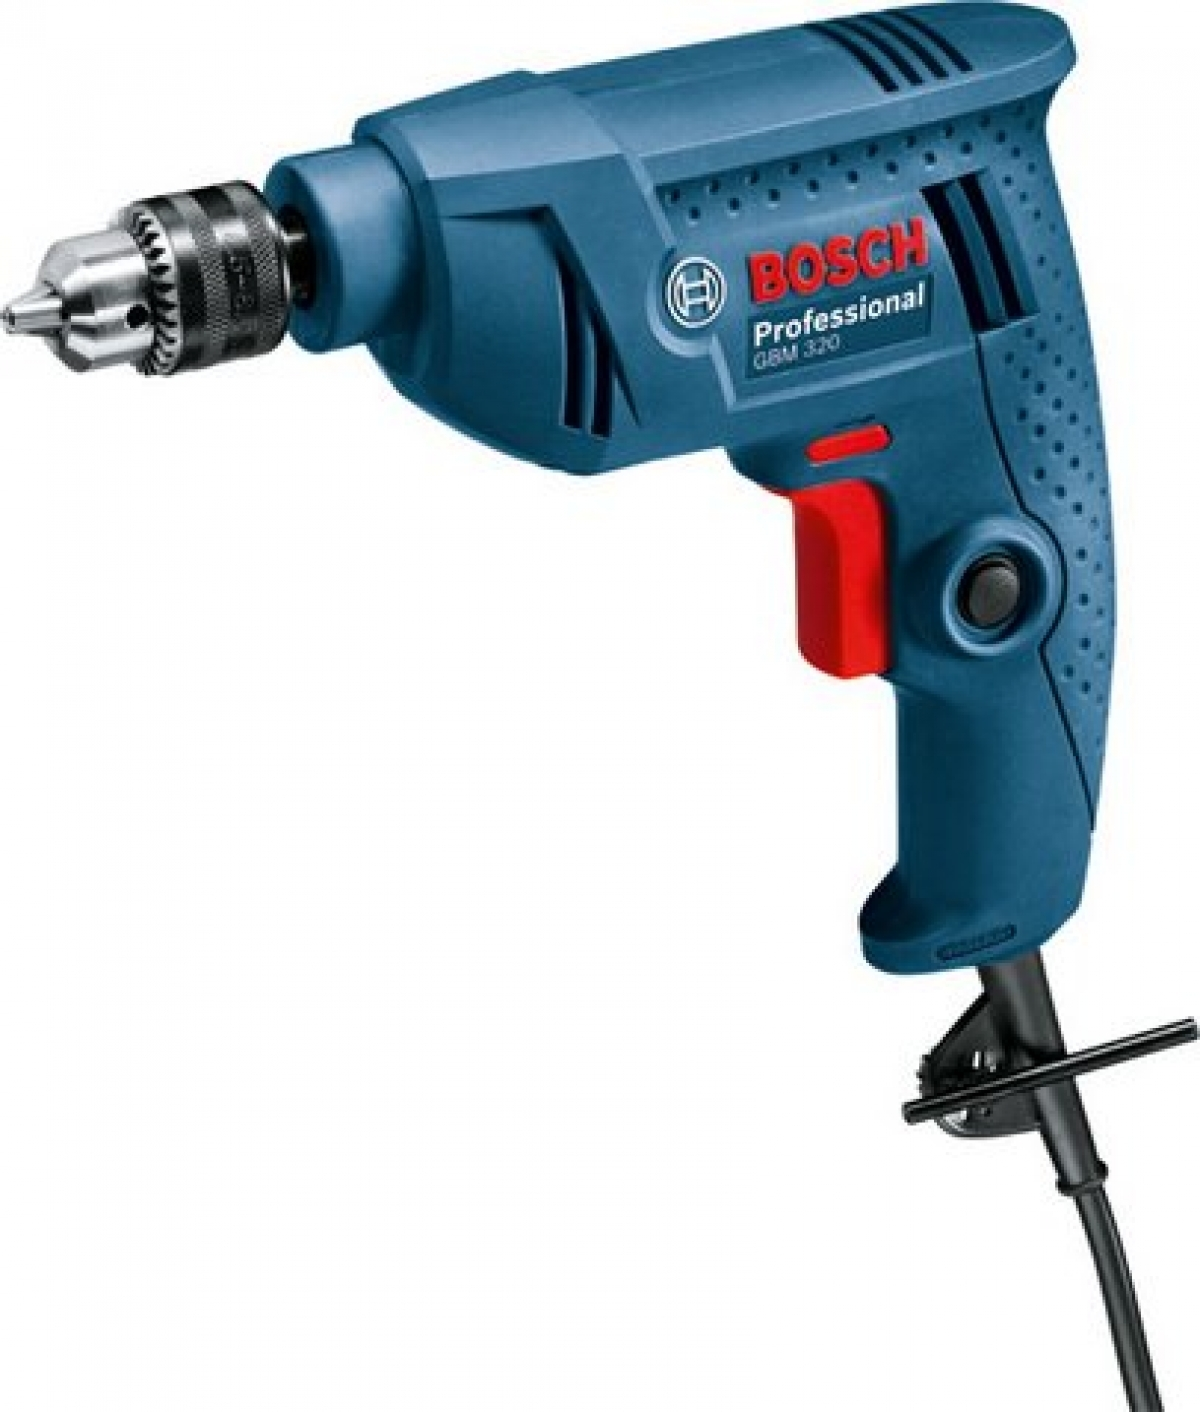 New Bosch 320w 6 5mm Electric Drill My Power Tools